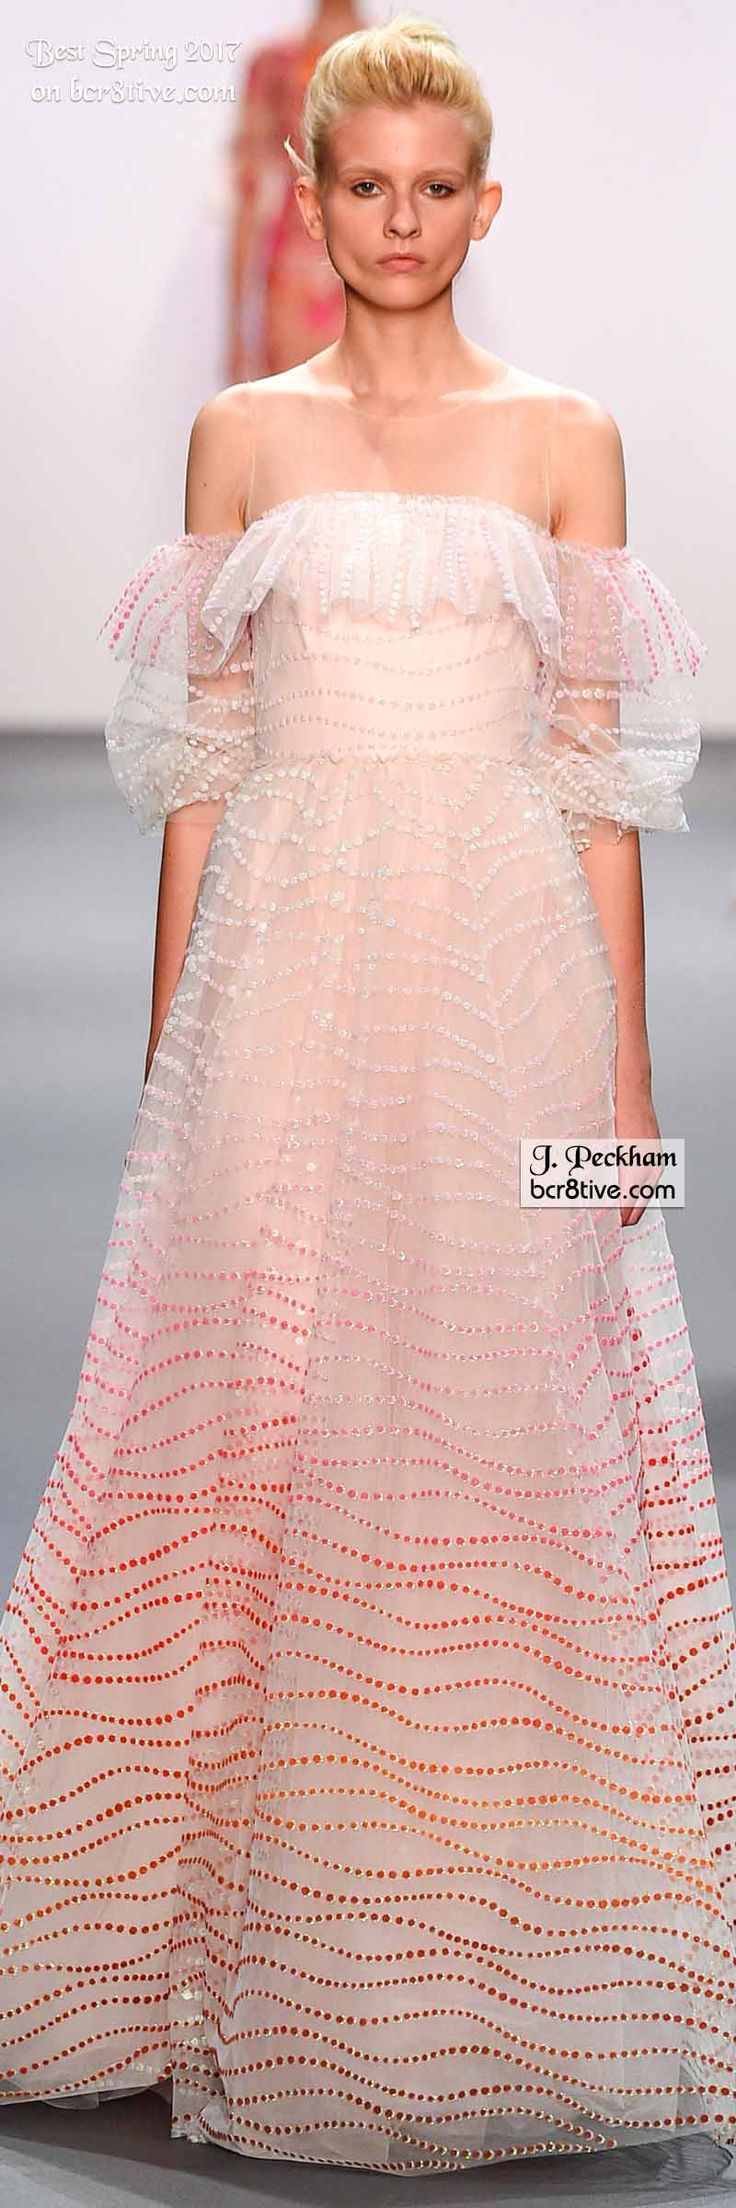 33 best Gowns Pink 2 images on Pinterest   High fashion, Wedding ...